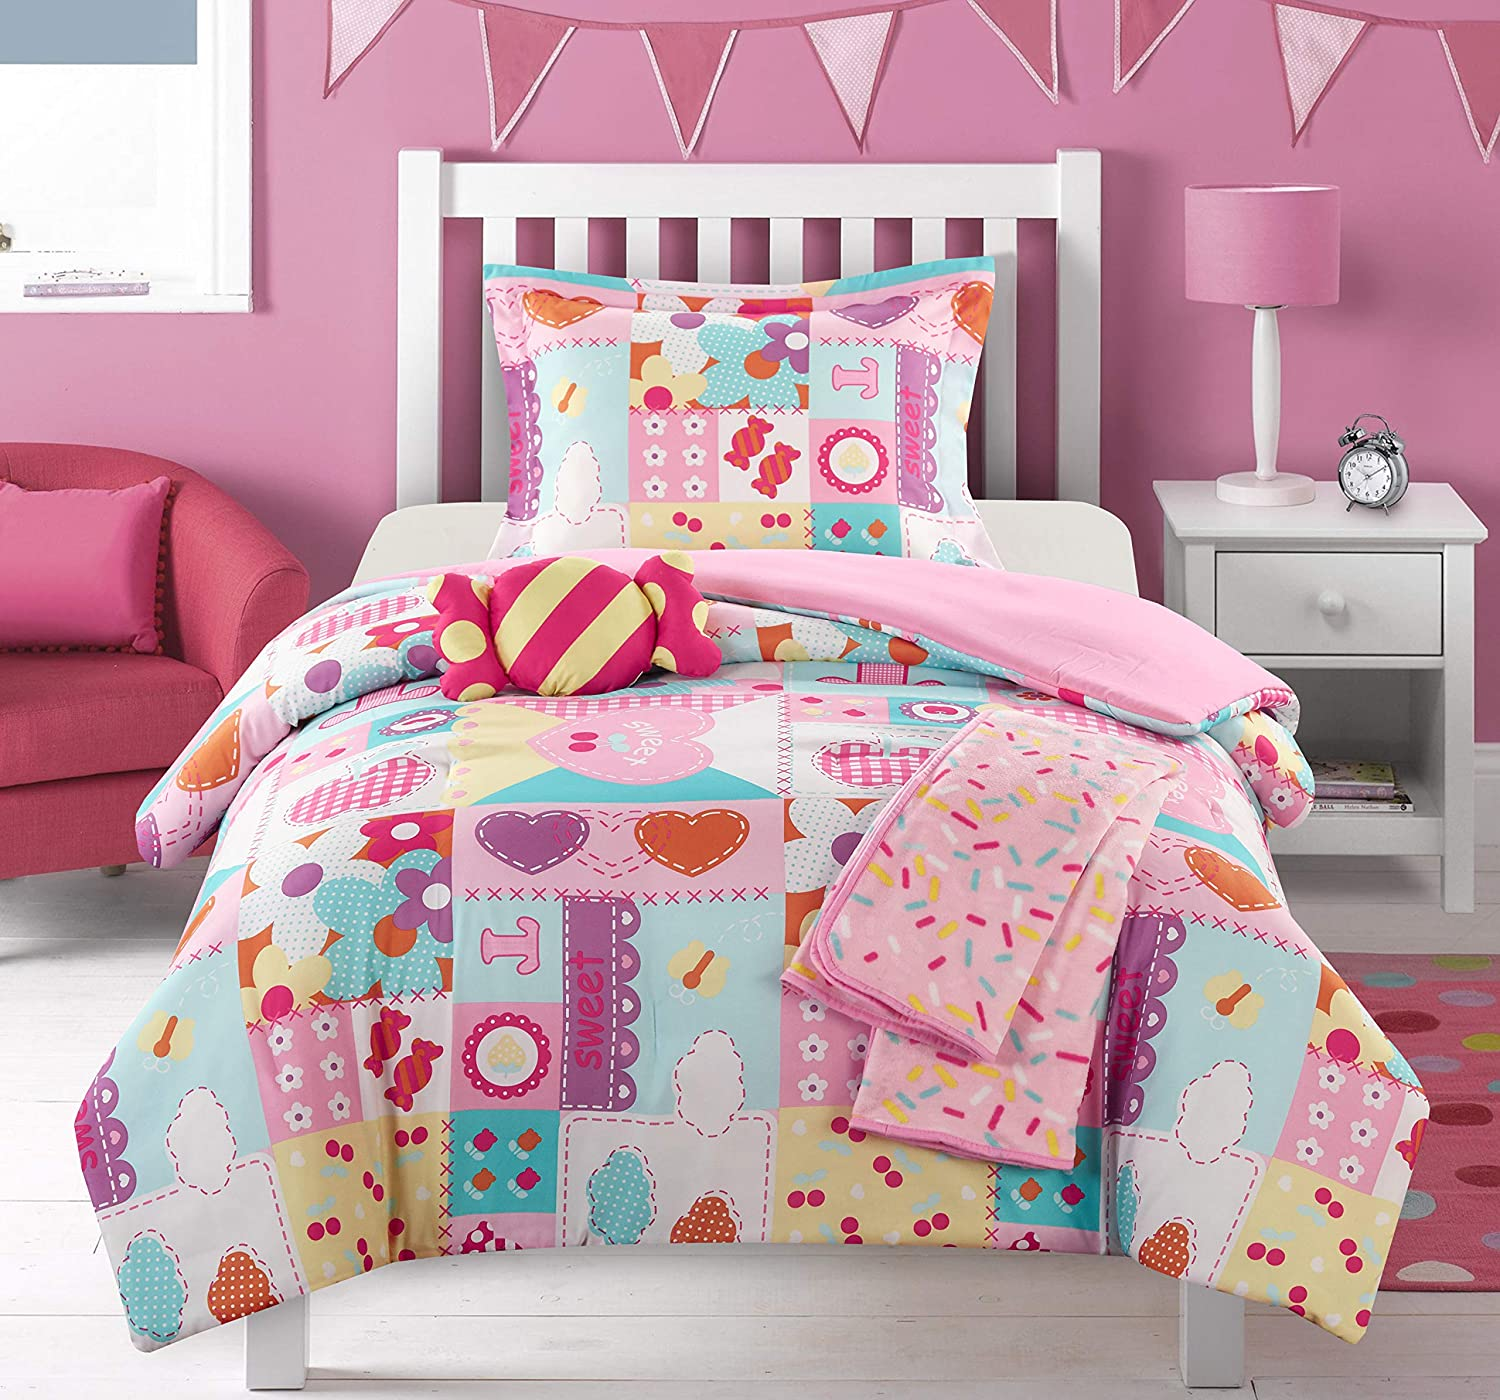 Chic Home Candy 4 Piece Comforter Set Stitched Patchwork Life is Sweet Theme Youth Design Bedding-Throw Blanket Decorative Pillow Sham Included, Twin